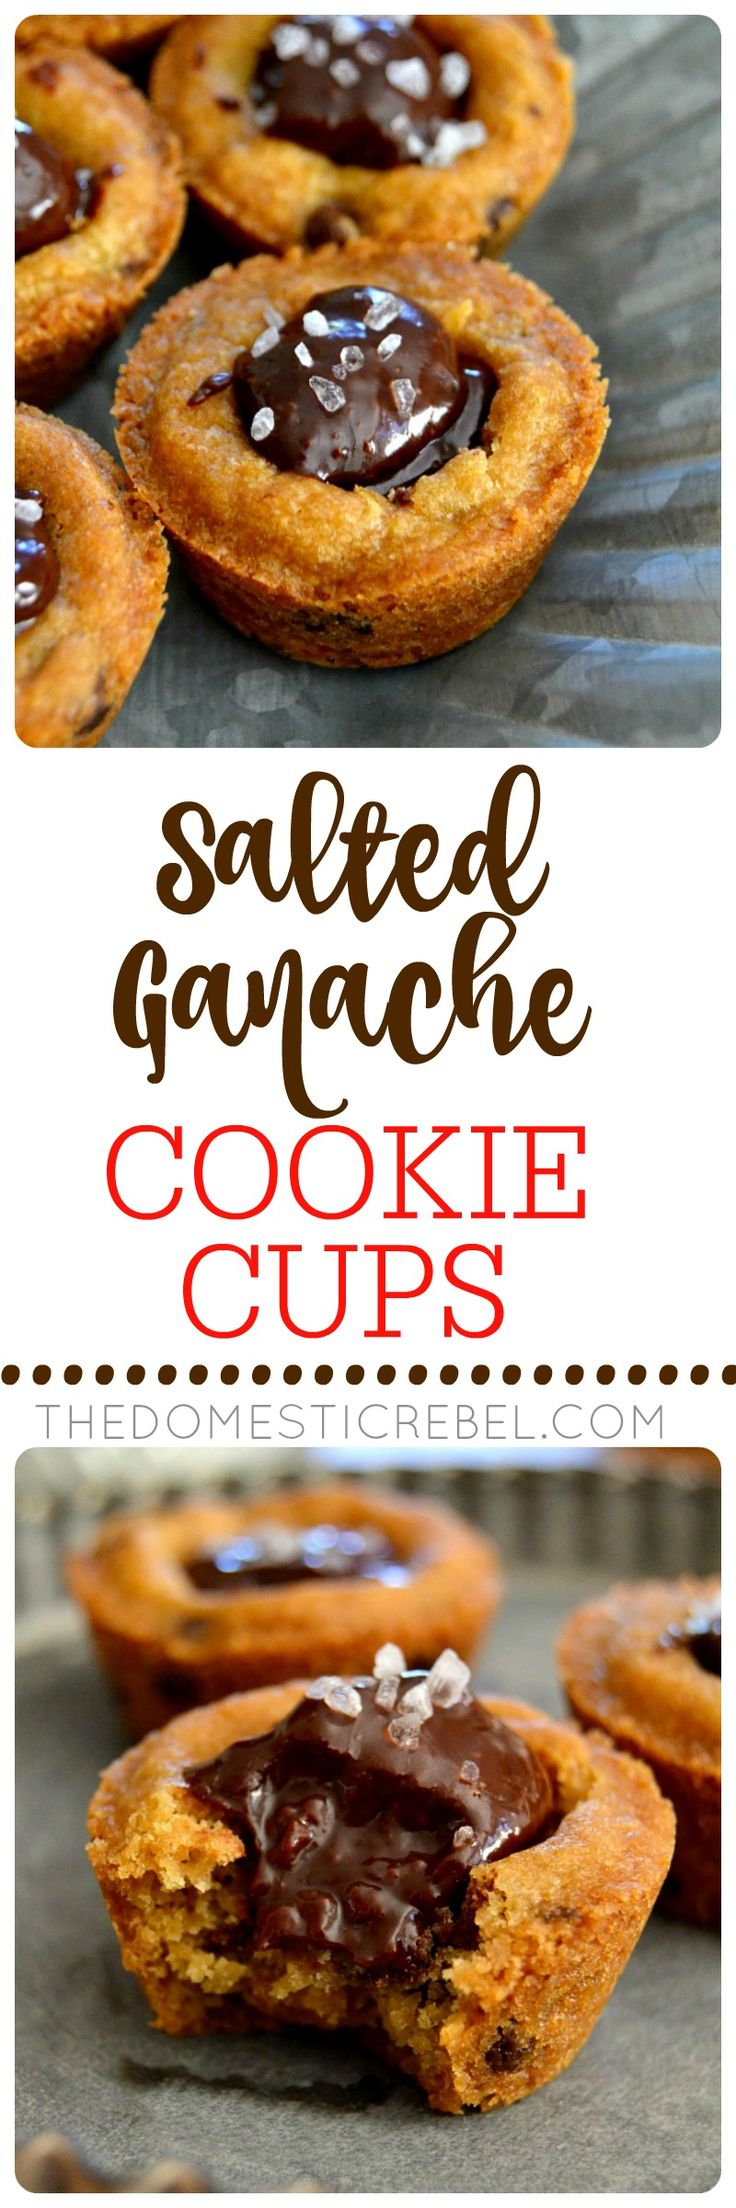 cookies chocolate chip ganache dipped chocolate chip cookies chocolate ...